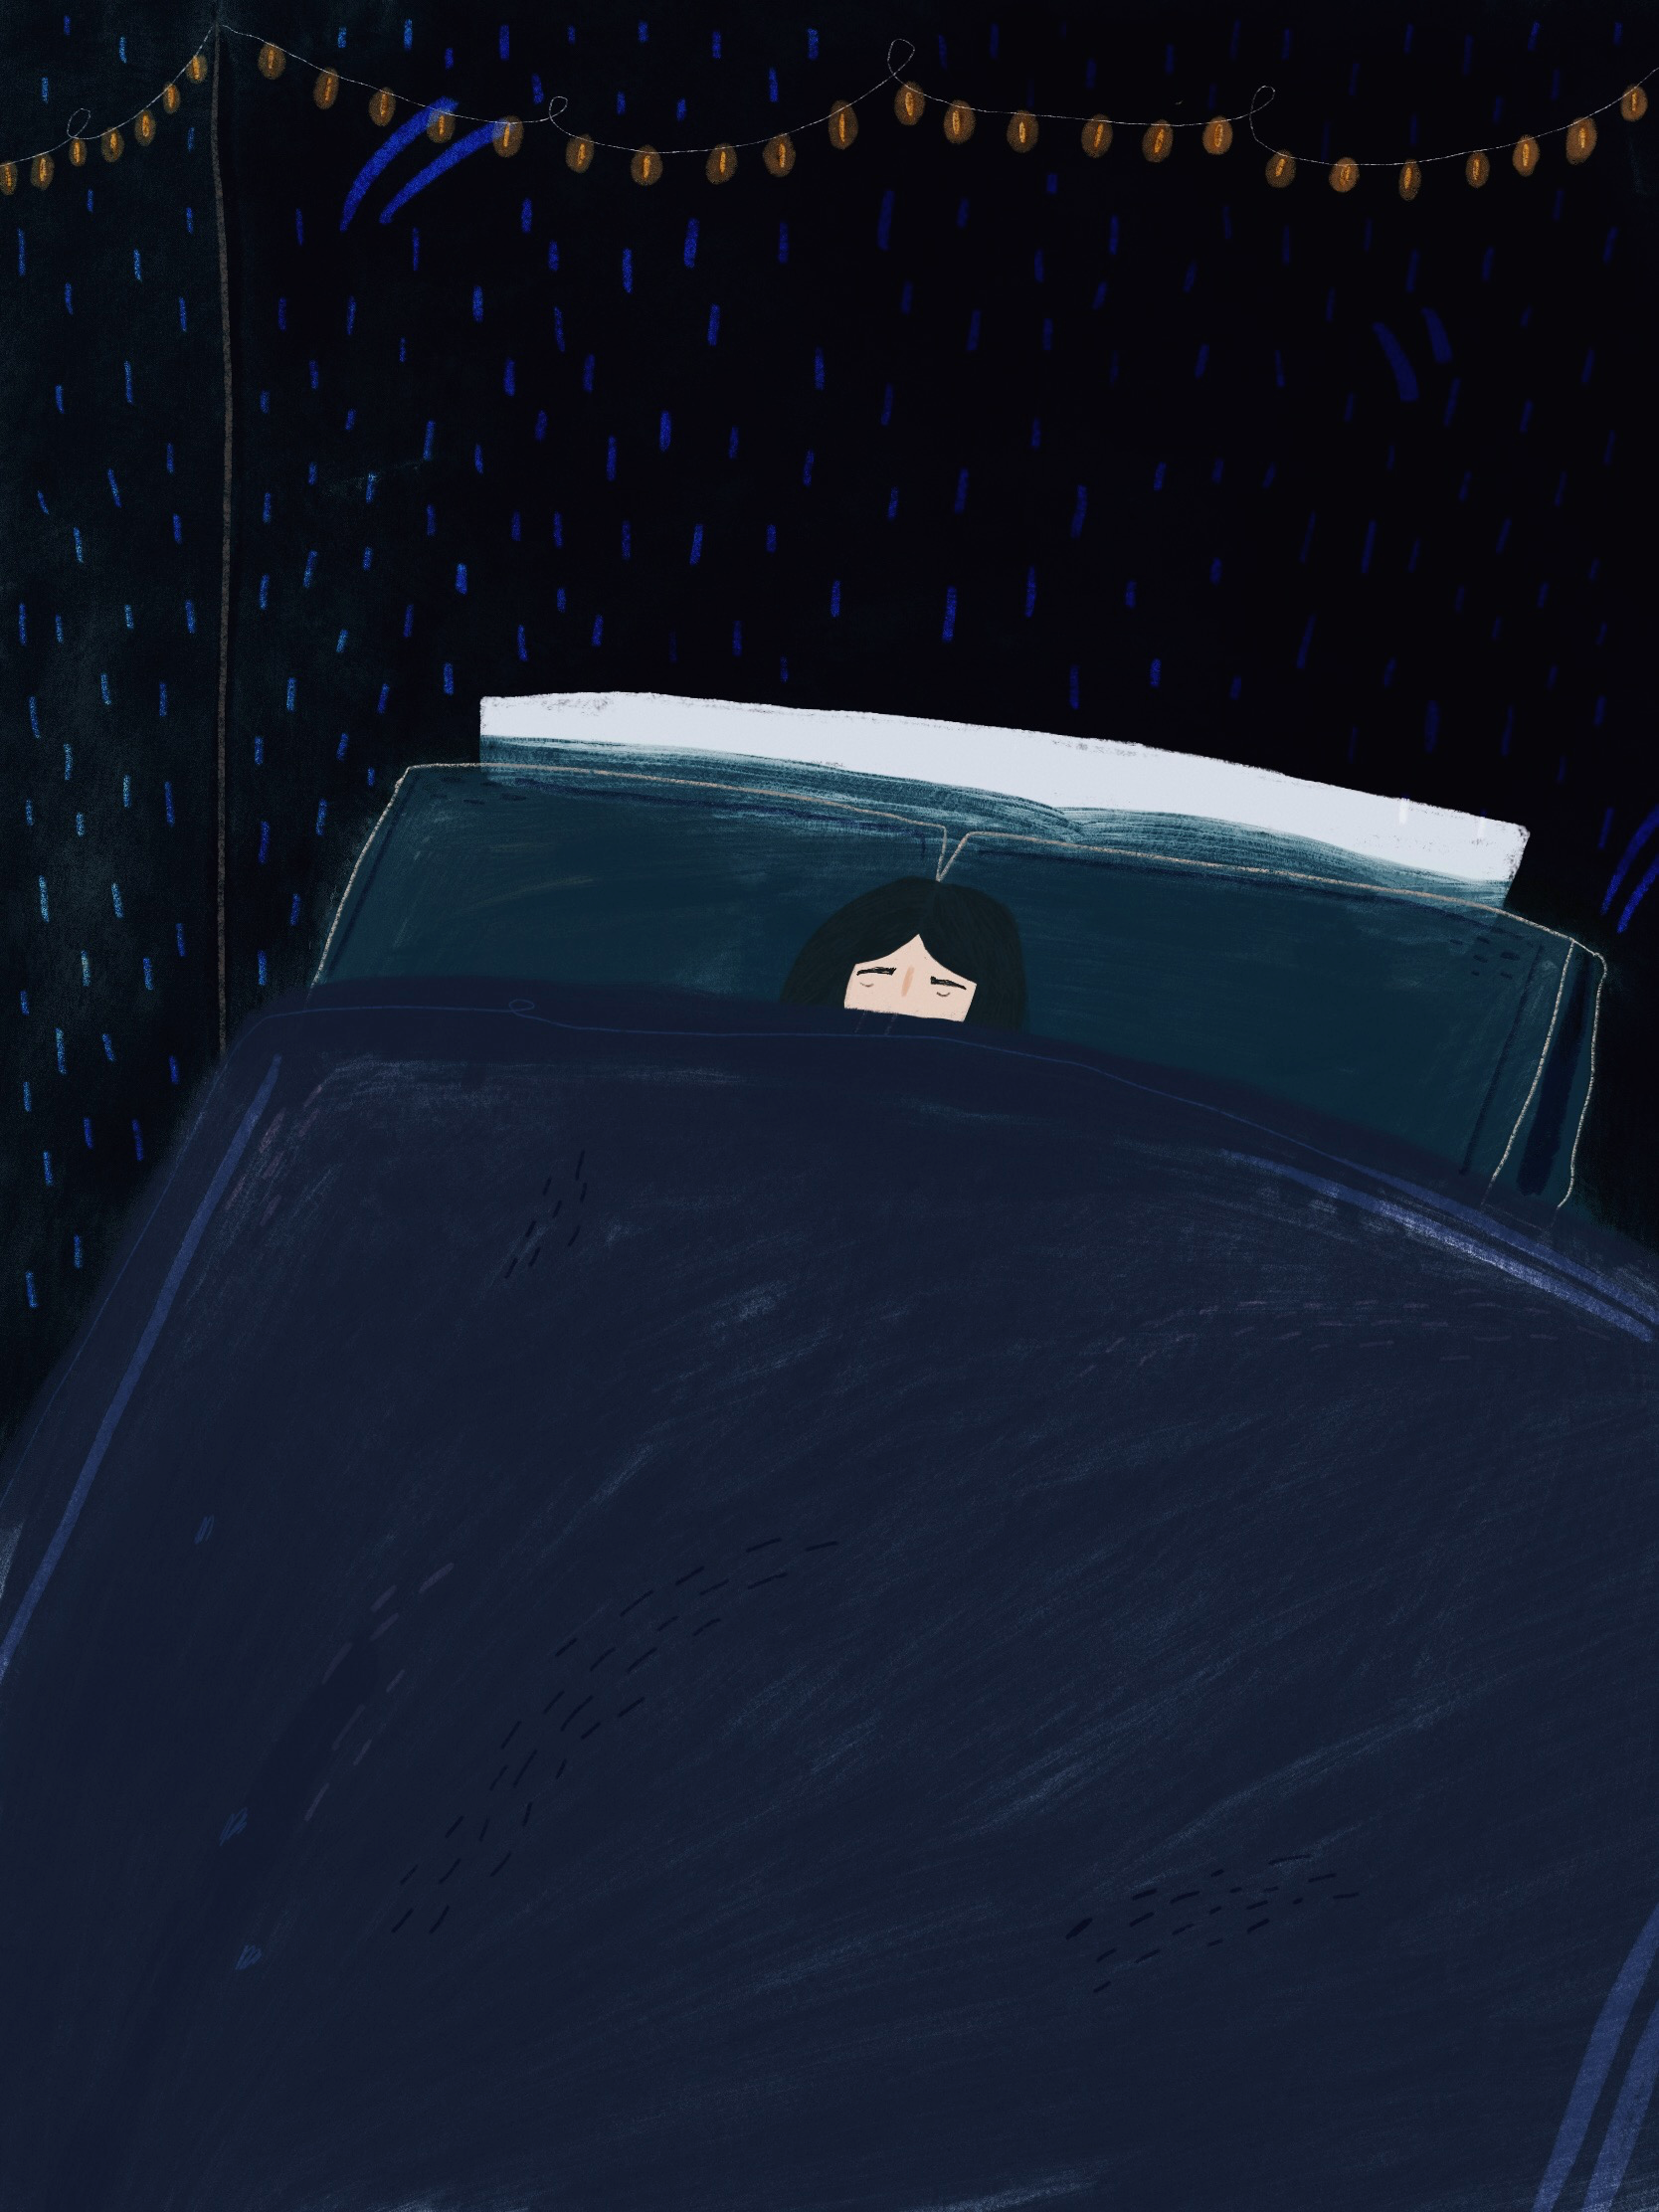 Homesick student - 2.png